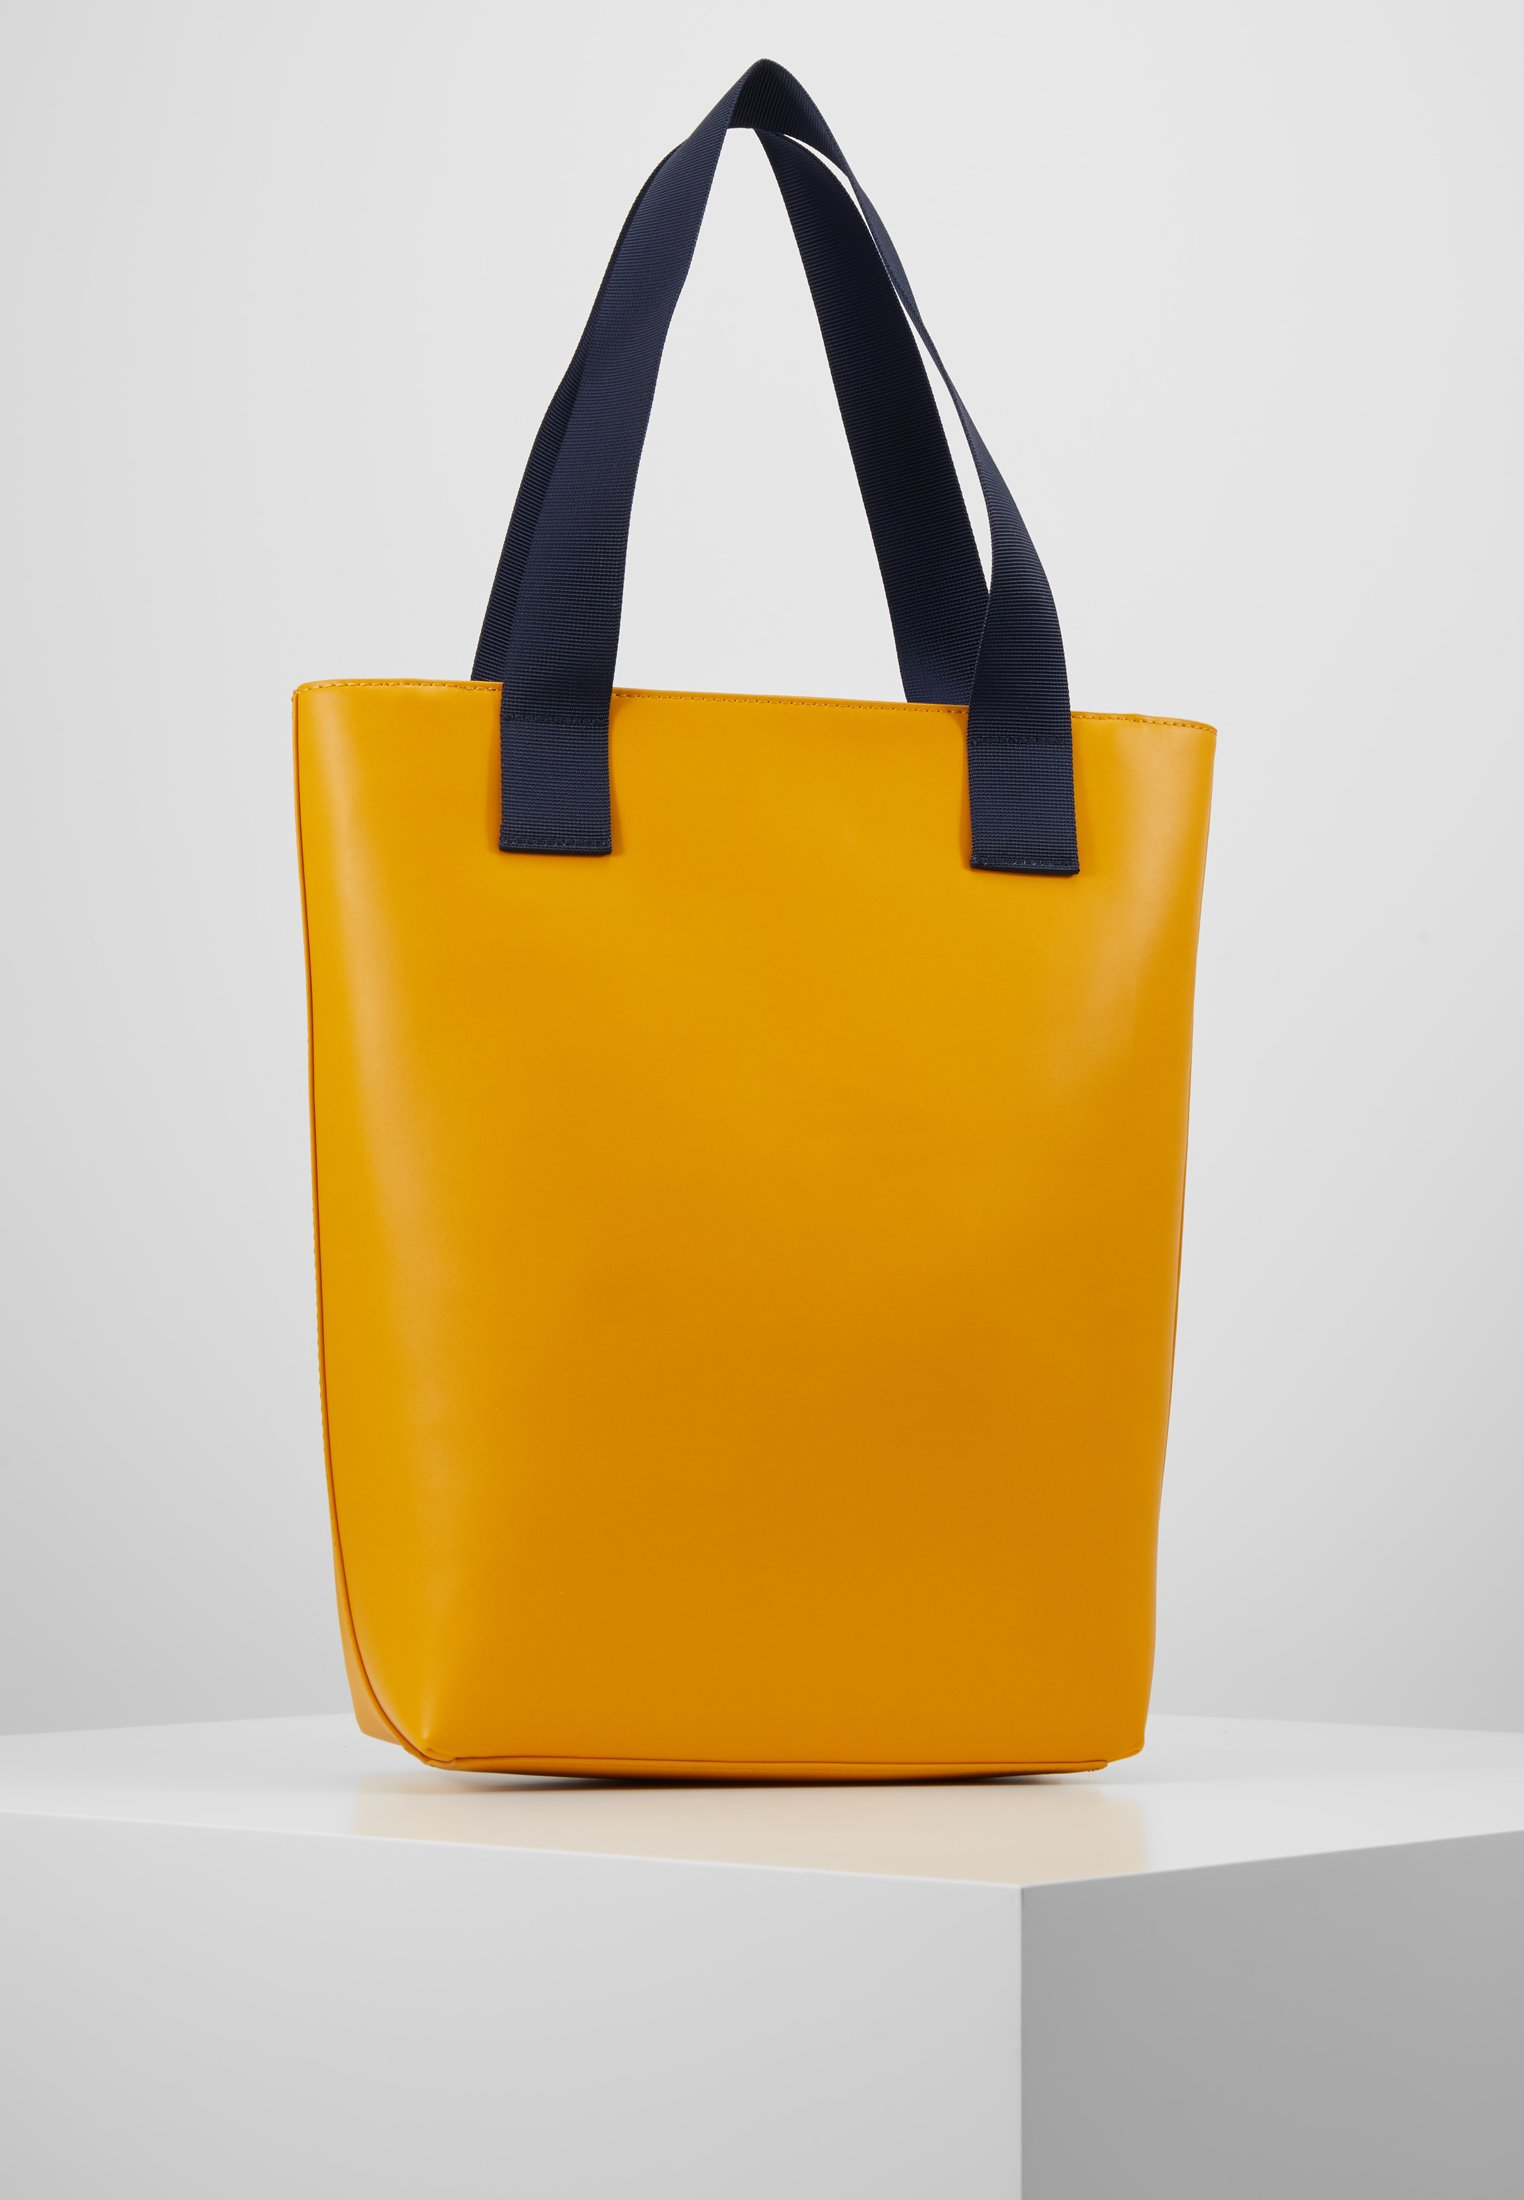 Tommy Yellow ToteCabas Femme Femme Jeans ToteCabas Yellow Femme Jeans Jeans ToteCabas Tommy Tommy ygb7vIYf6